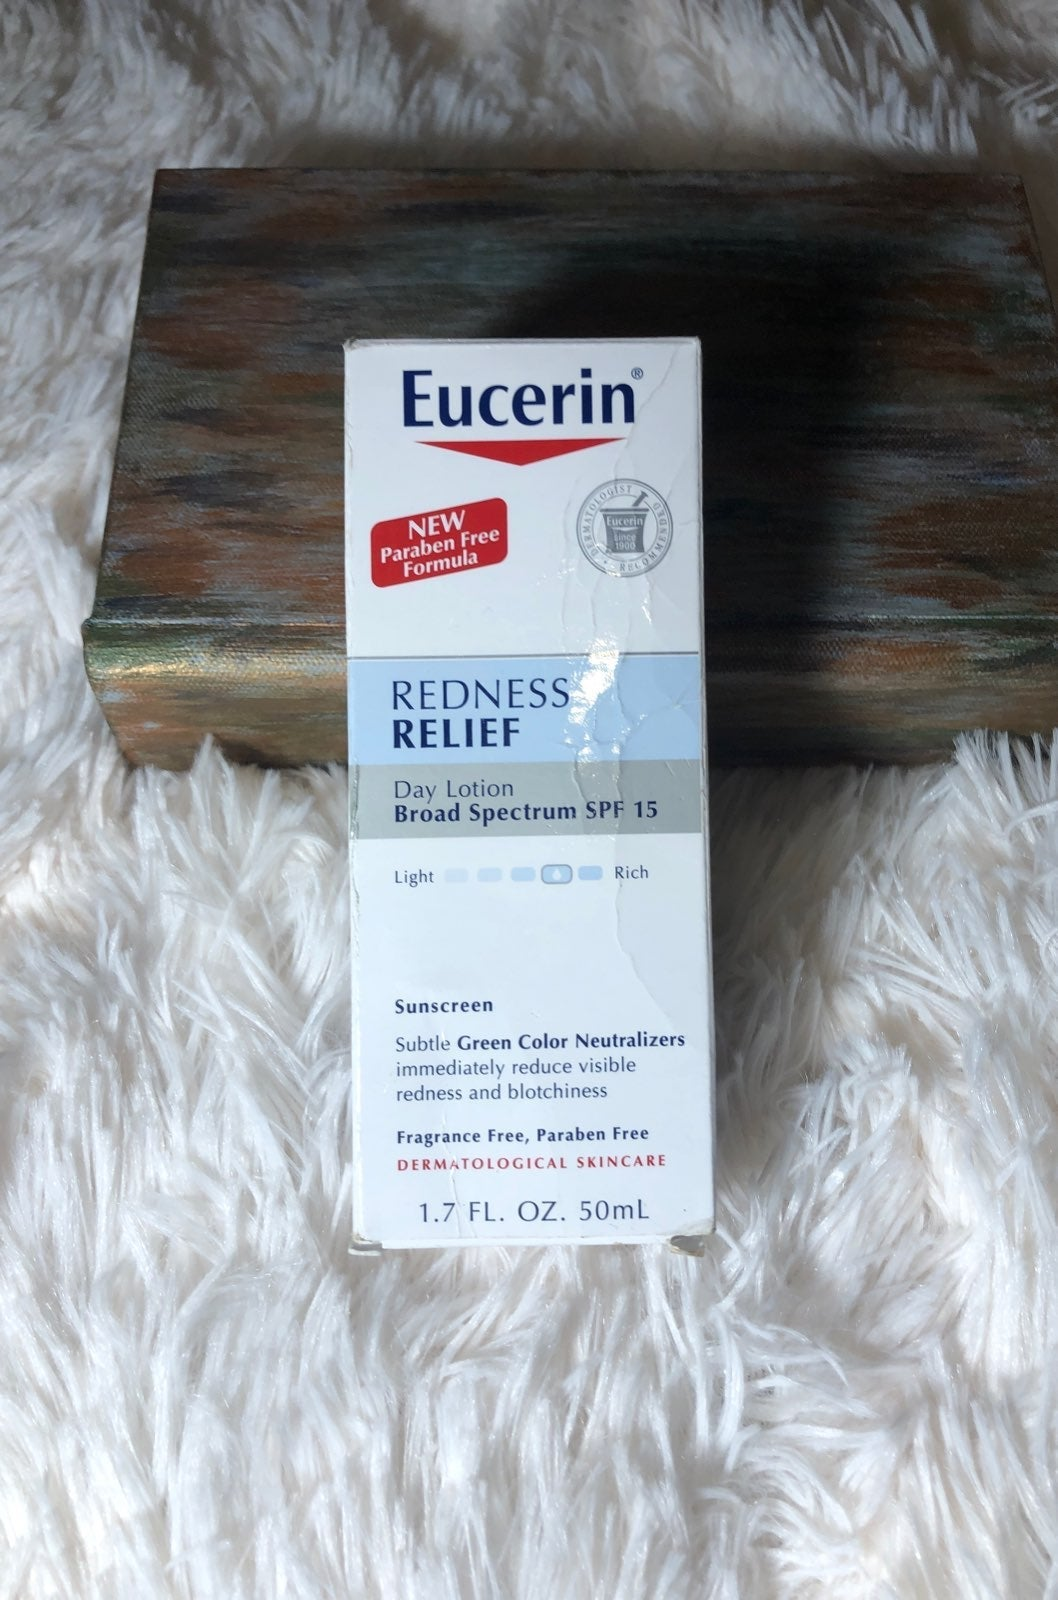 Eucerin Redness Relief SPF Day Lotion